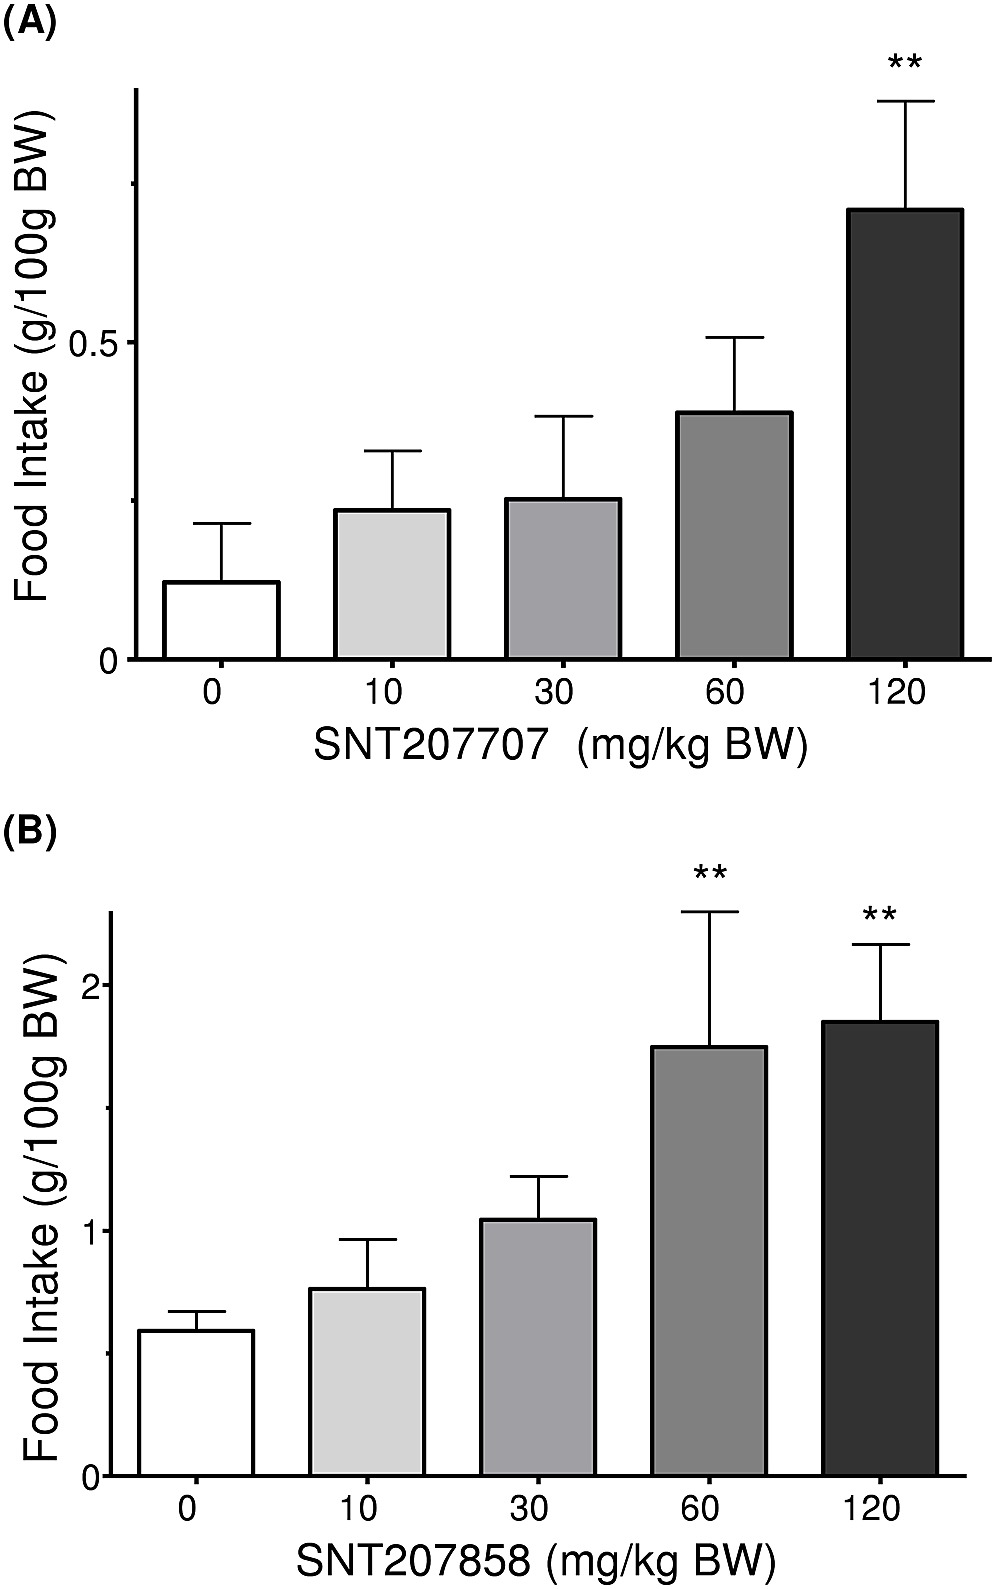 medium resolution of the effects of p o administration of a snt207707 and b snt207858 on light phase food intake in healthy mice